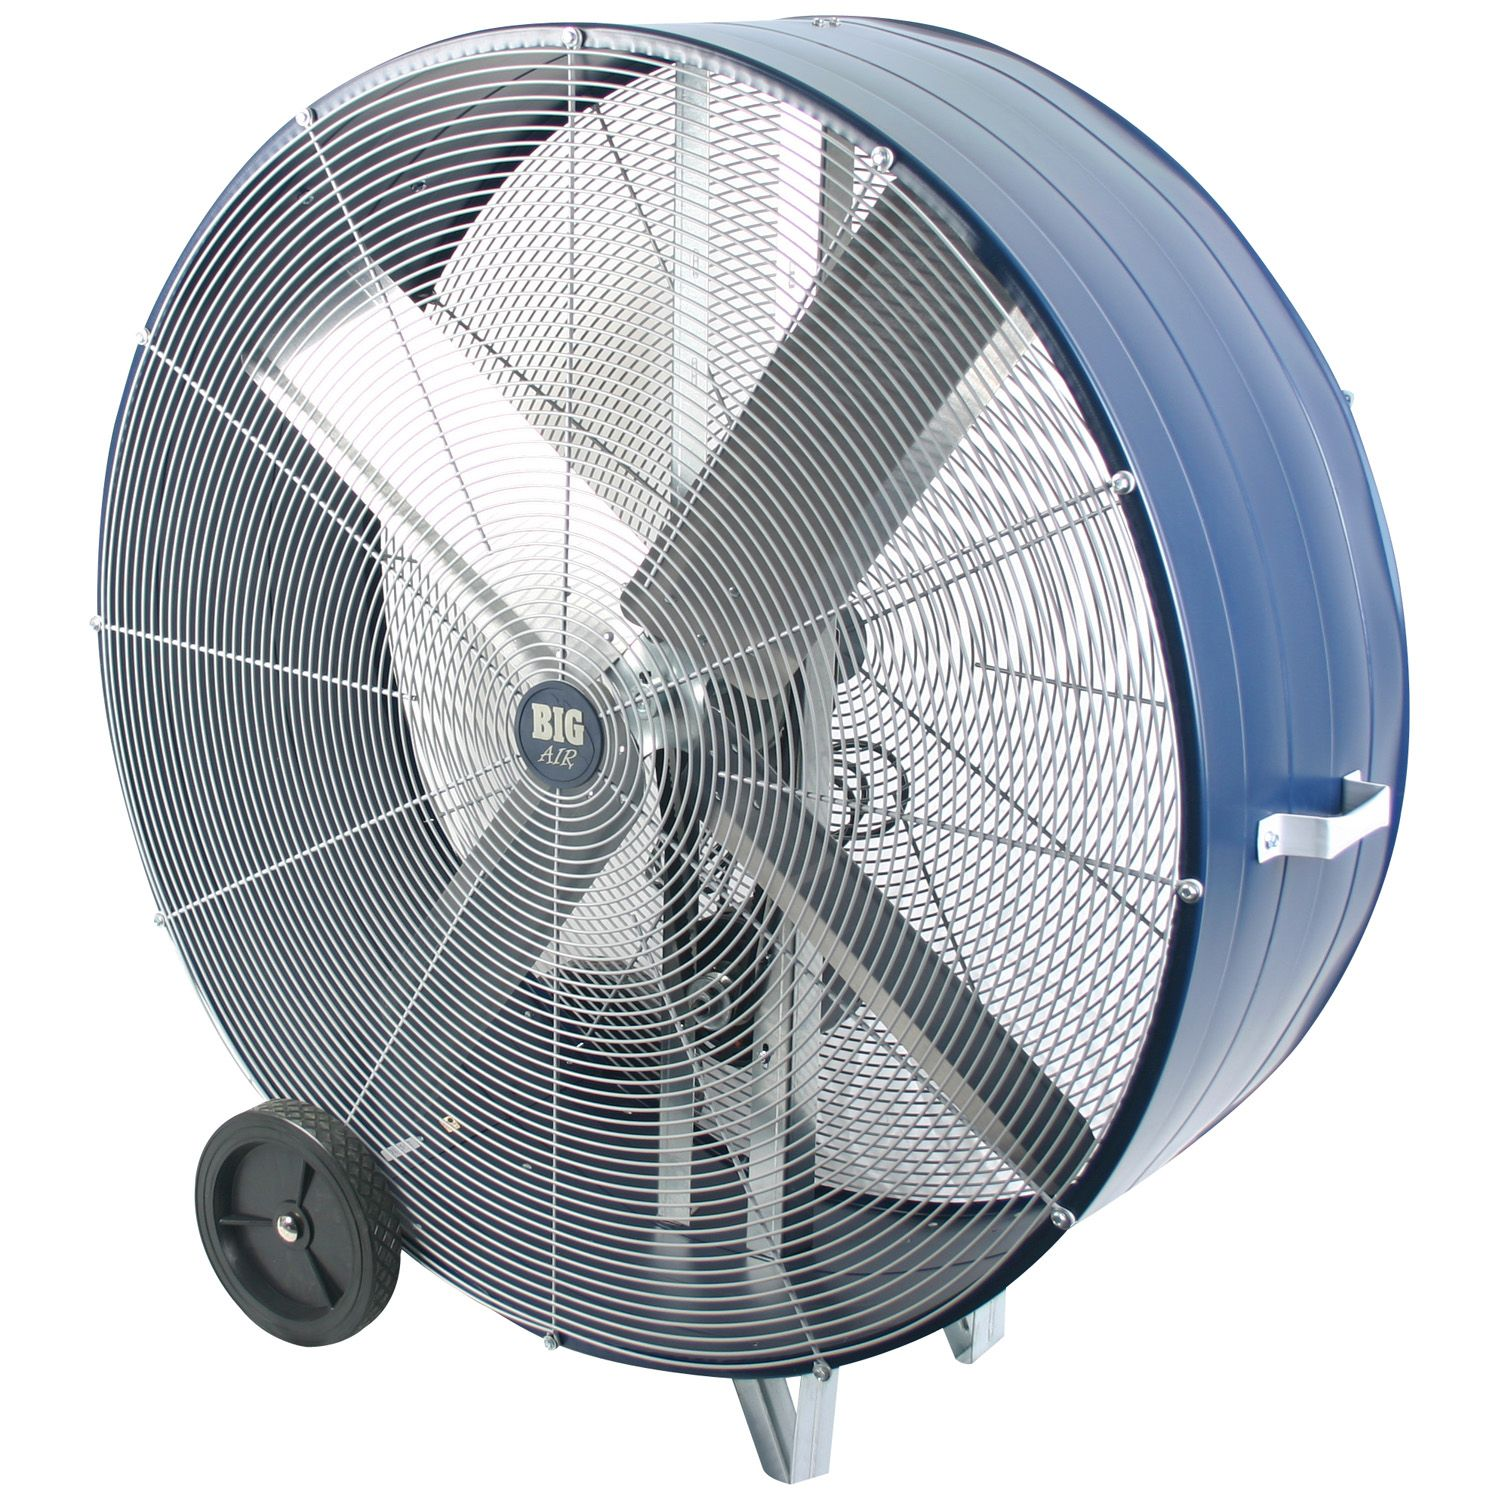 Large Industrial Fans : Big air quot industrial drum fan ebay